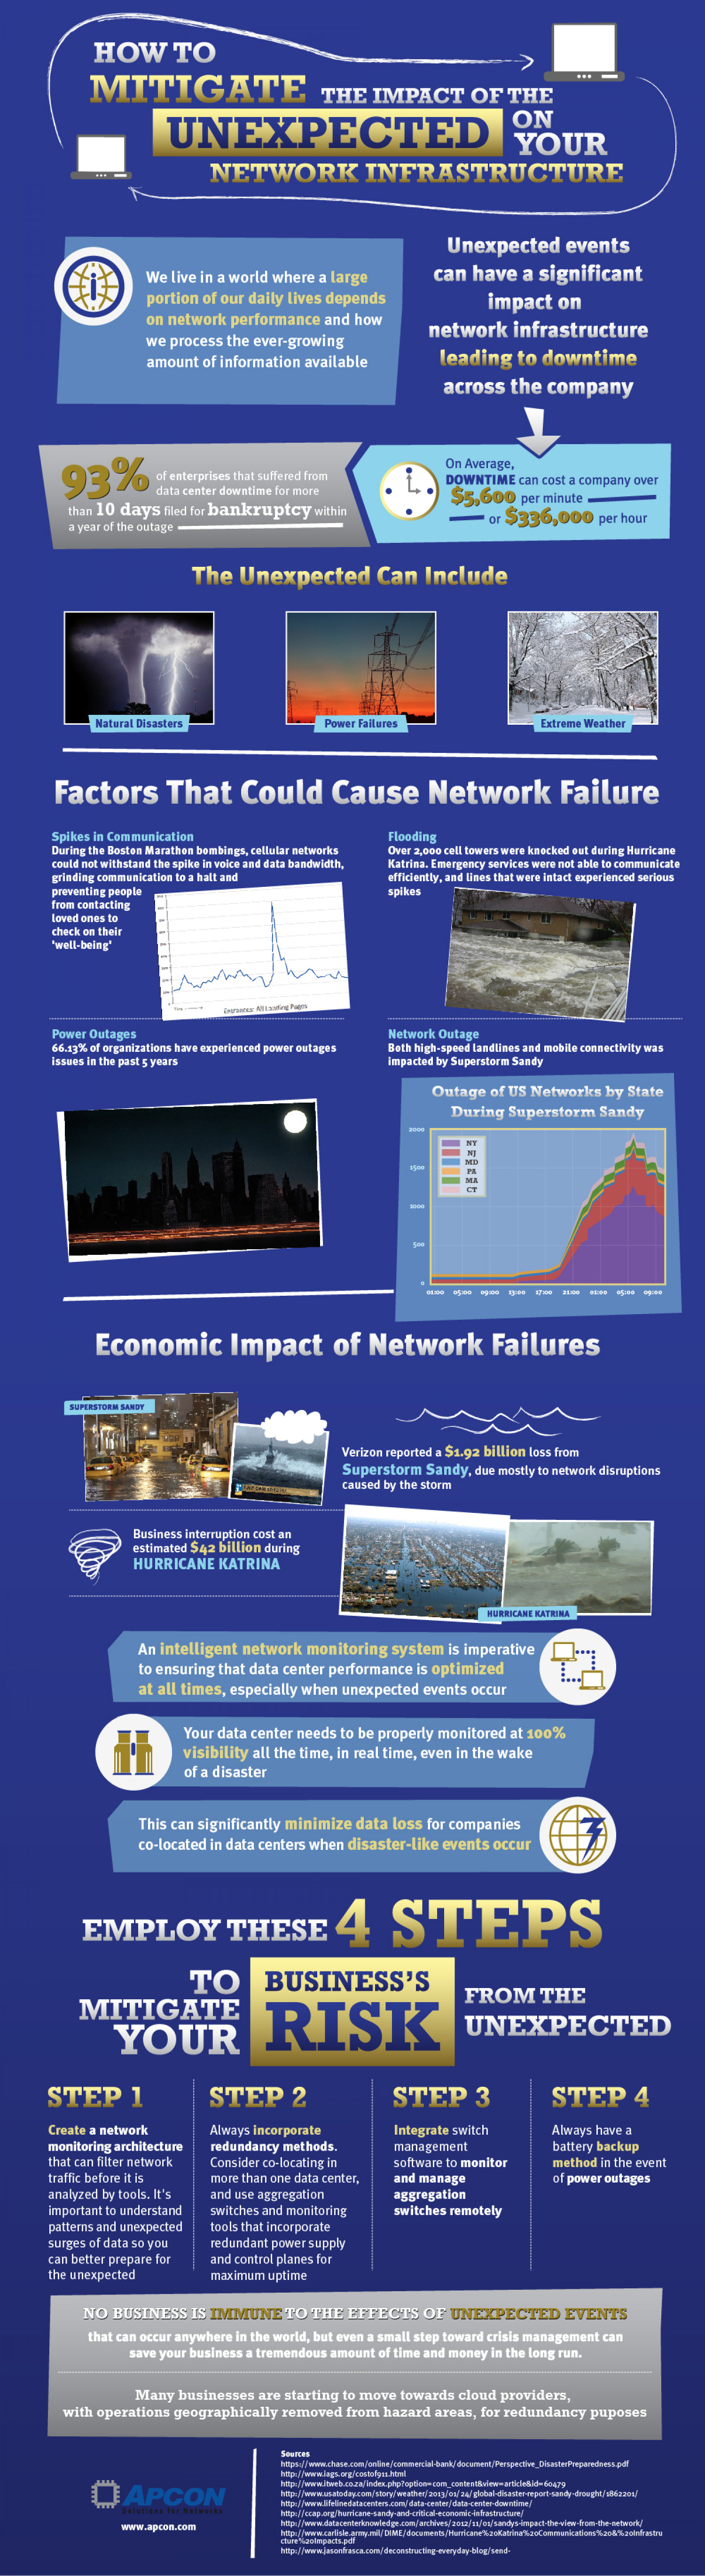 How to Mitigate the Impact of the Unexpected on your Network Infrastructure Infographic